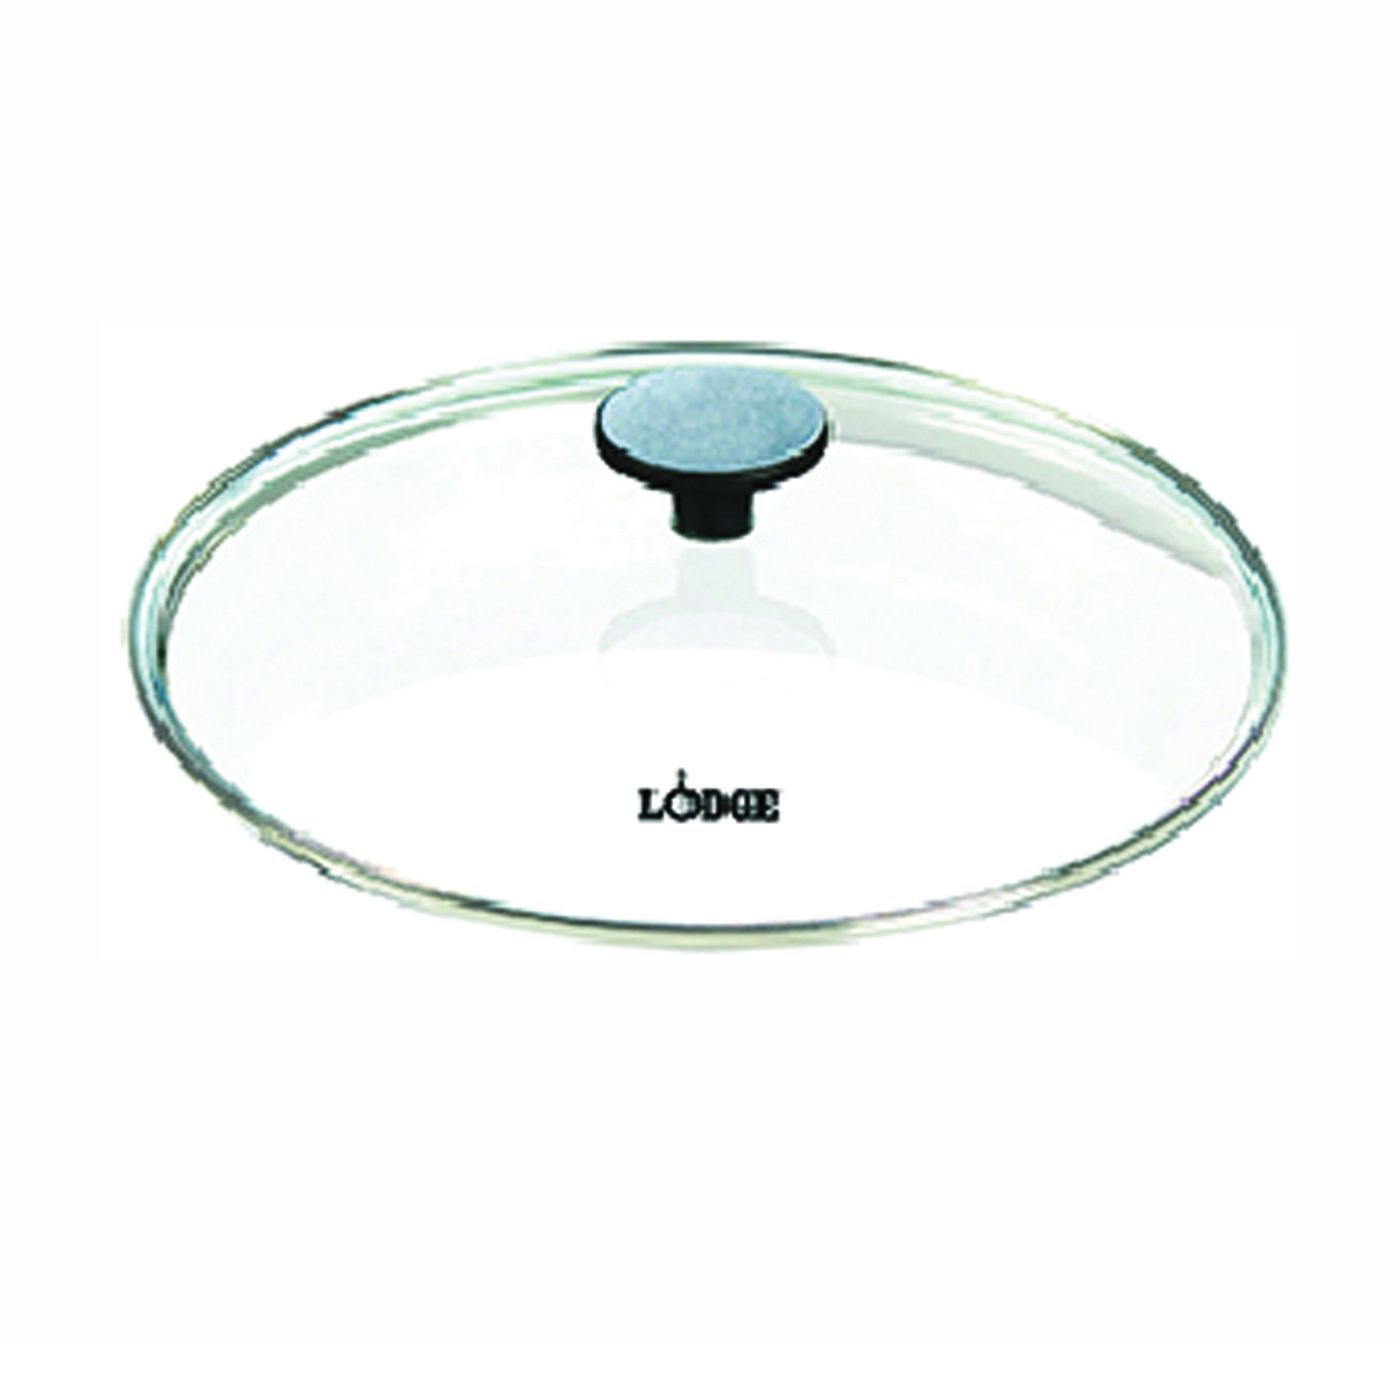 Picture of Lodge GL12 Glass Lid, Glass, For: L10SK3, L10SKG3, L10DSK3, L10DO3, L10CF3, L10DOL3 Model Skillets